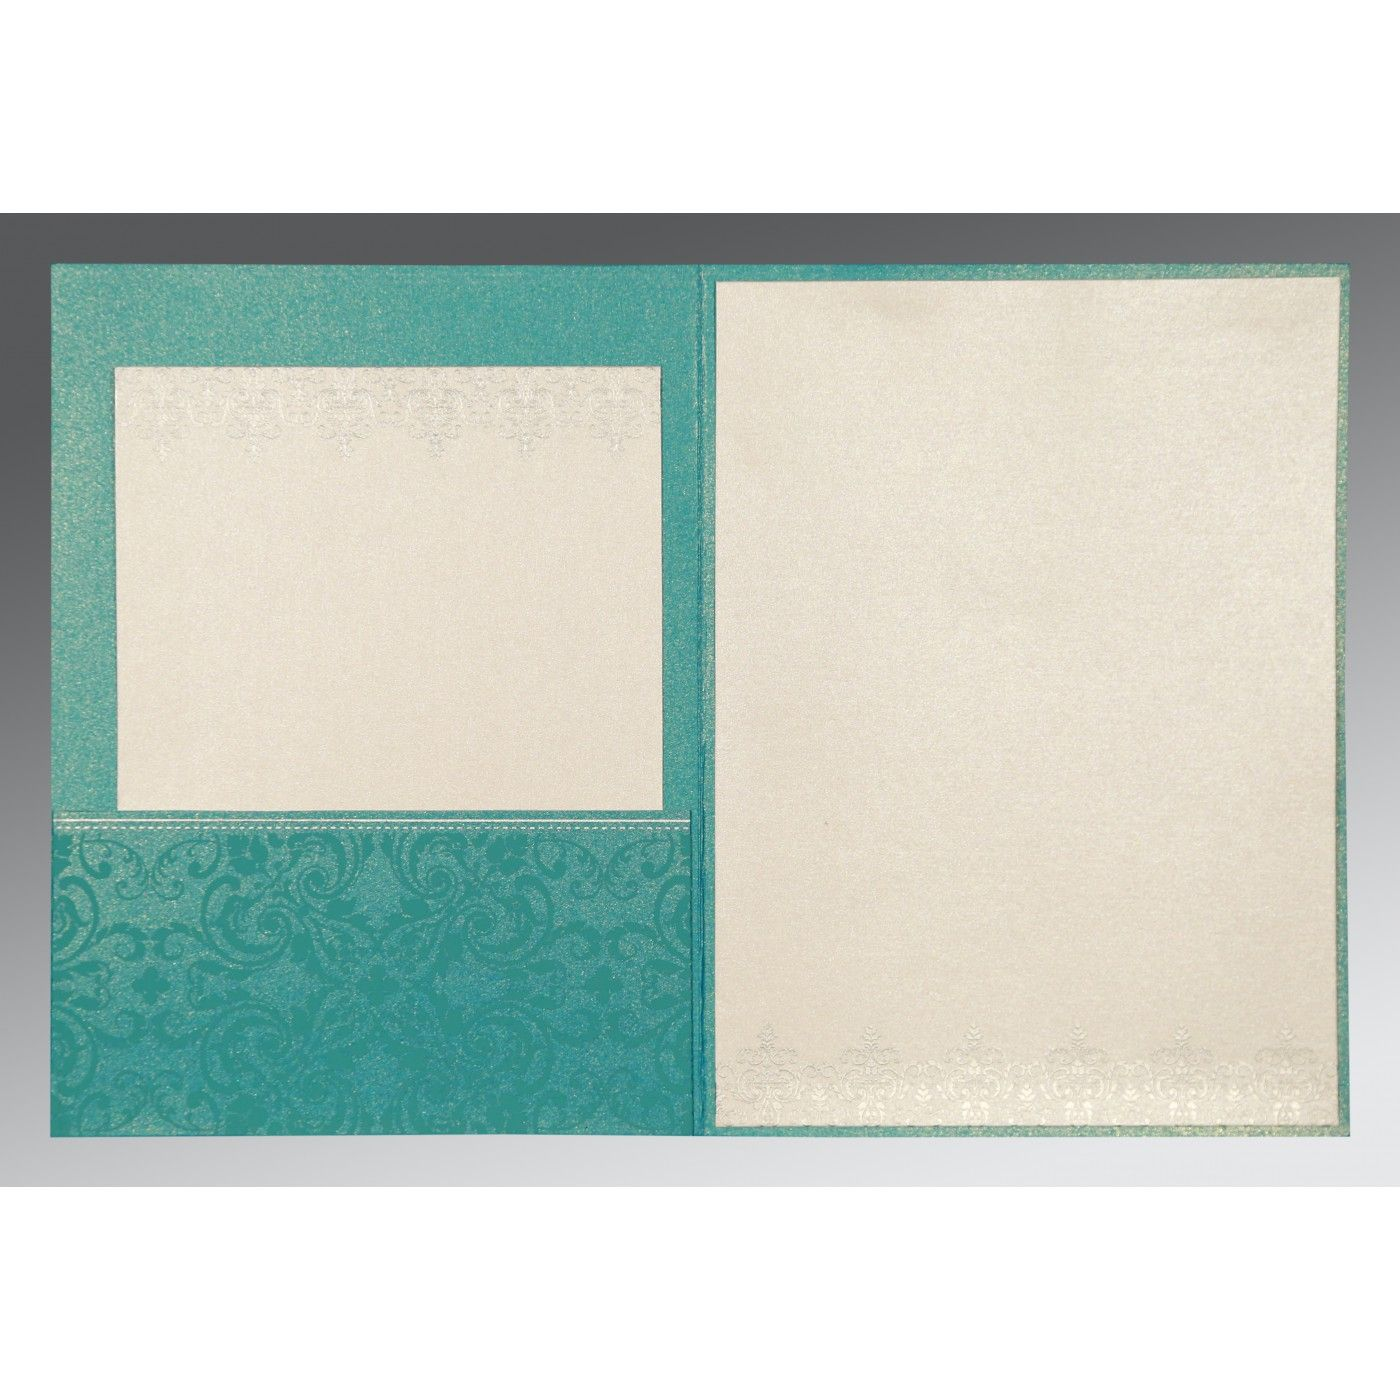 TEAL BLUE SHIMMERY SCREEN PRINTED WEDDING CARD : CD-8244C - IndianWeddingCards